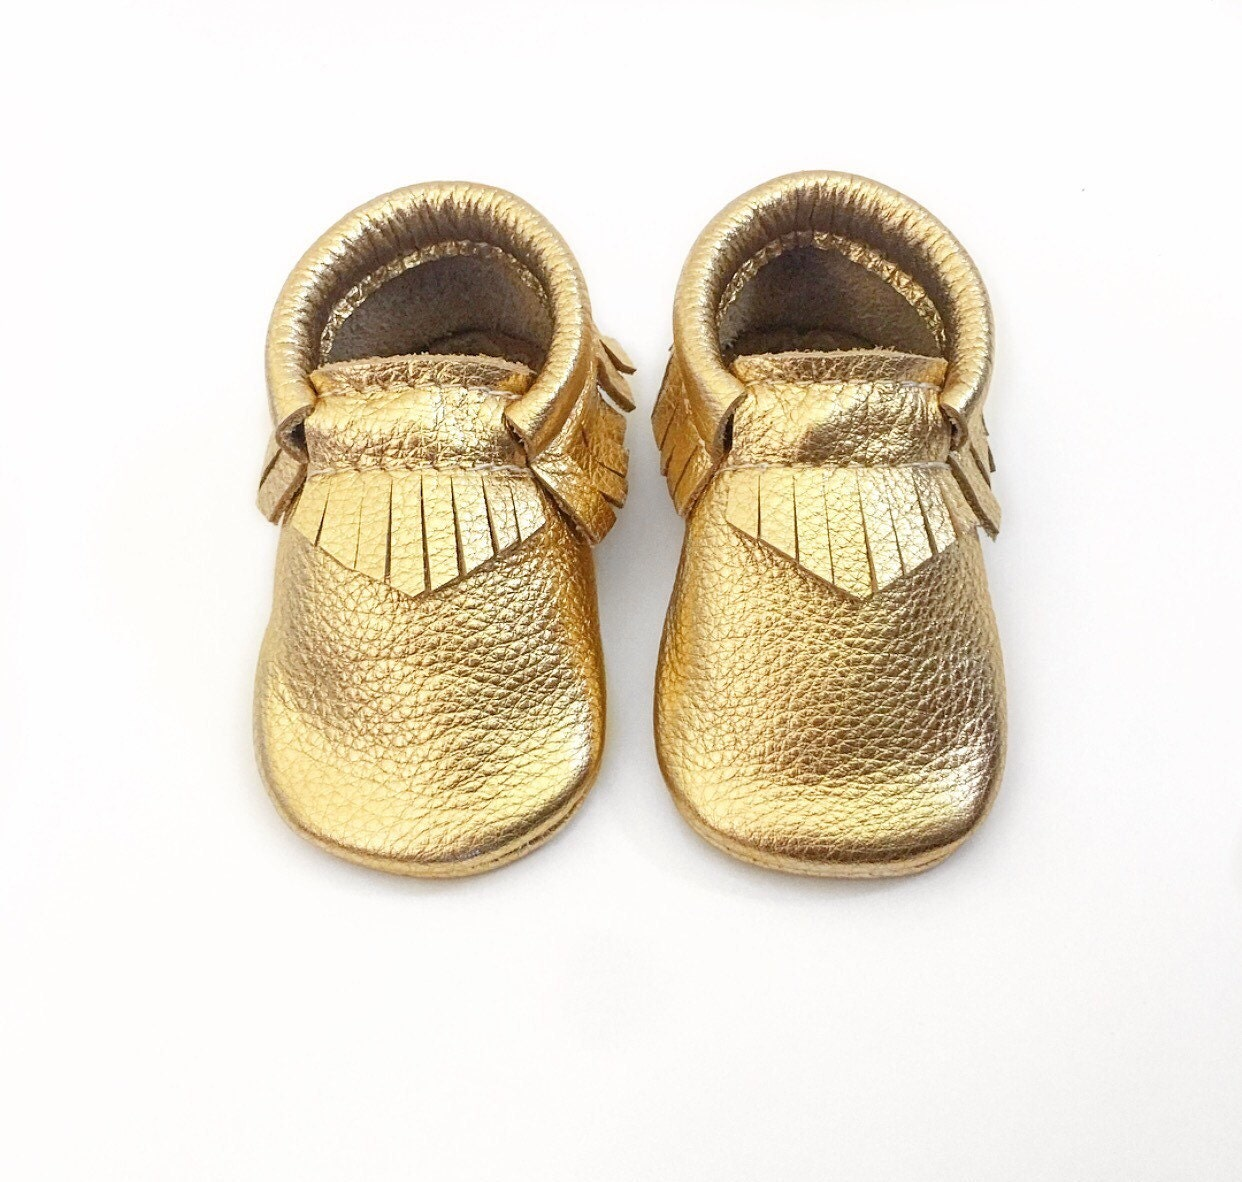 At Freshly Picked, we design unique, premium and useful products for families. Our classic diaper bag, soft-sole baby moccasins, and kids' sneakers are made to be durable, functional, and look amazing.